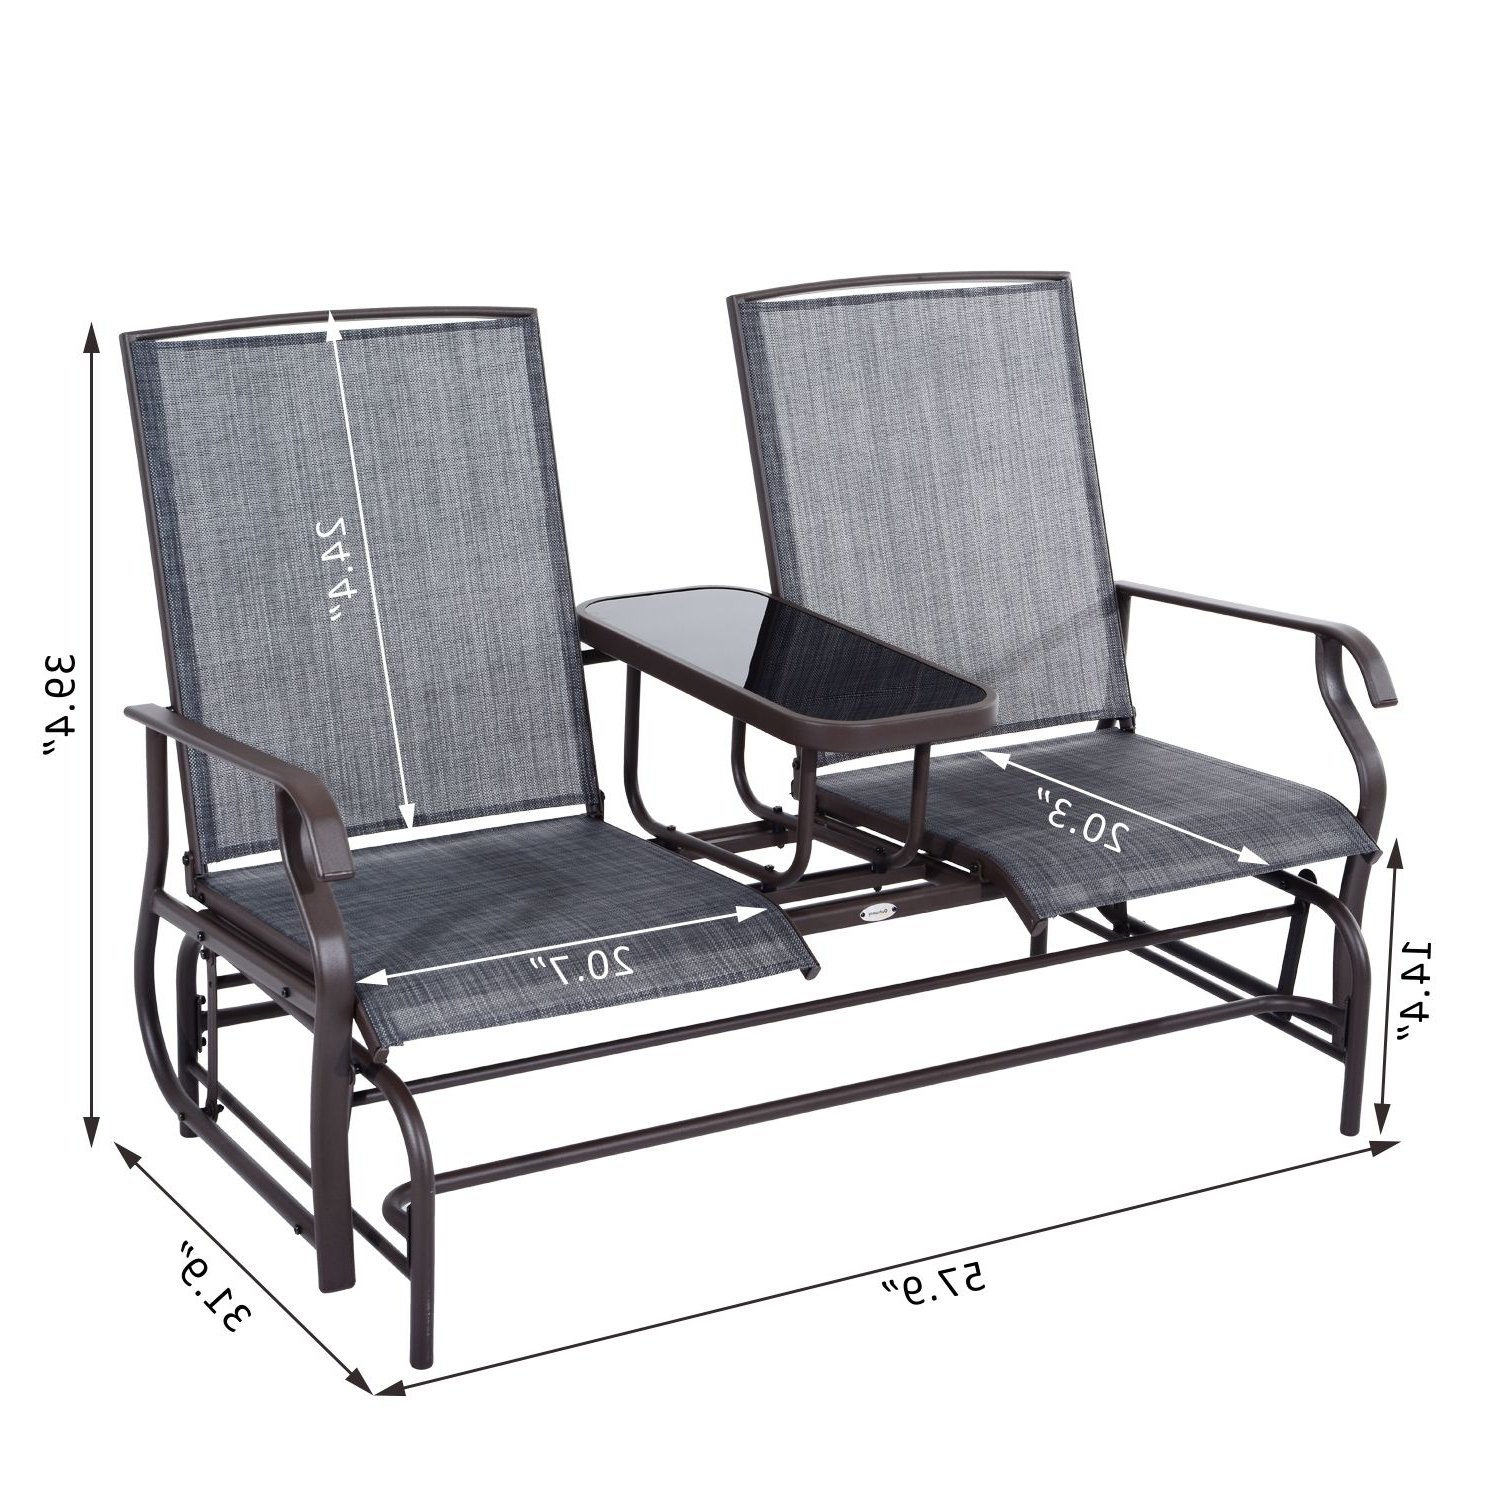 Most Recently Released 2 Person Loveseat Chair Patio Porch Swings With Rocker Regarding Patio Glider Rocking Chair Bench Loveseat 2 Person Rocker (Gallery 16 of 25)